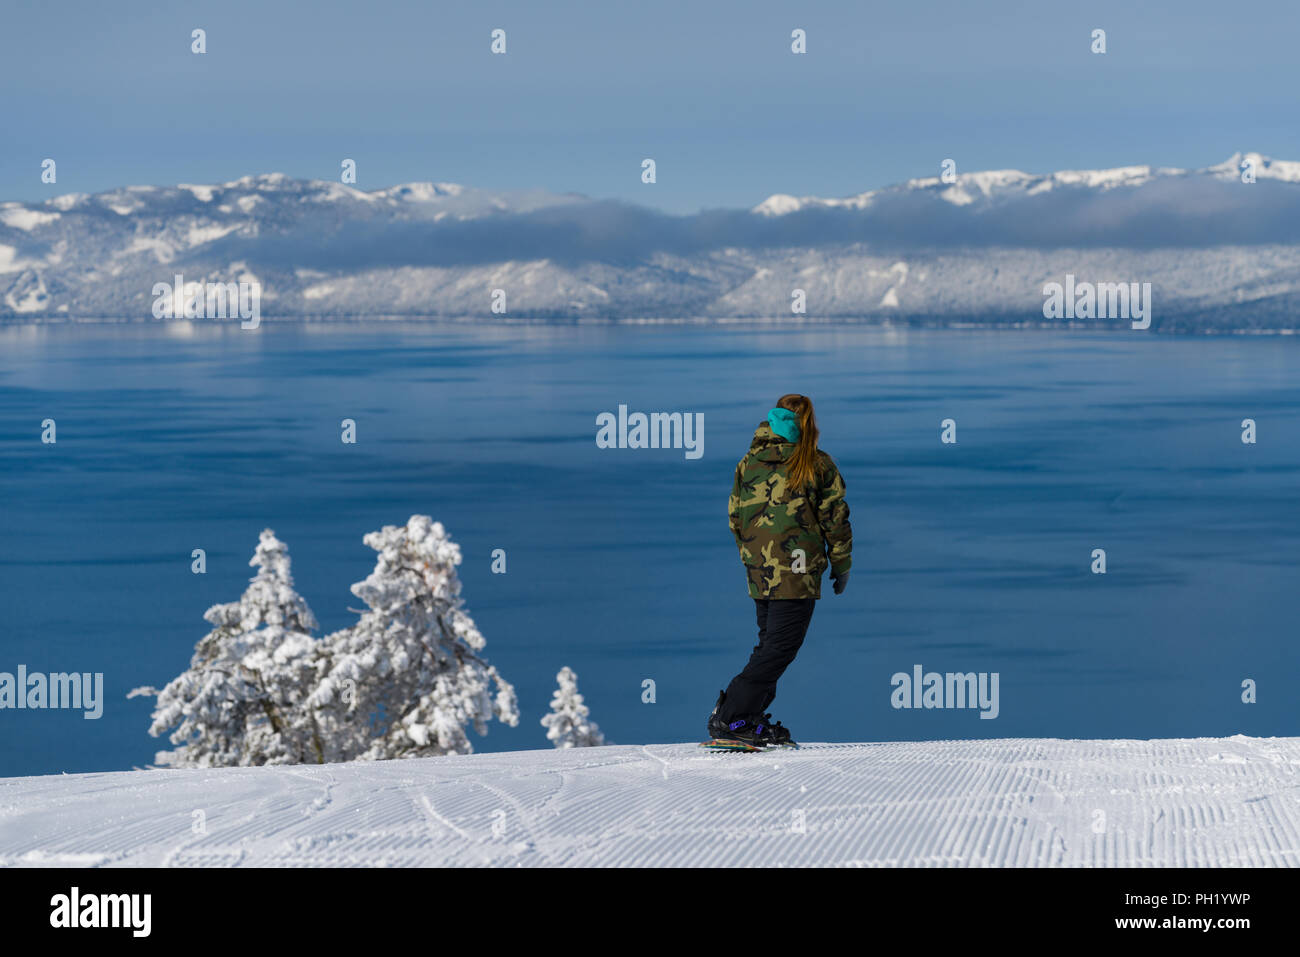 A snowboarder rides into Lake Tahoe as viewed from Diamond Peak ski resort in Incline Village after a snow storm. Stock Photo